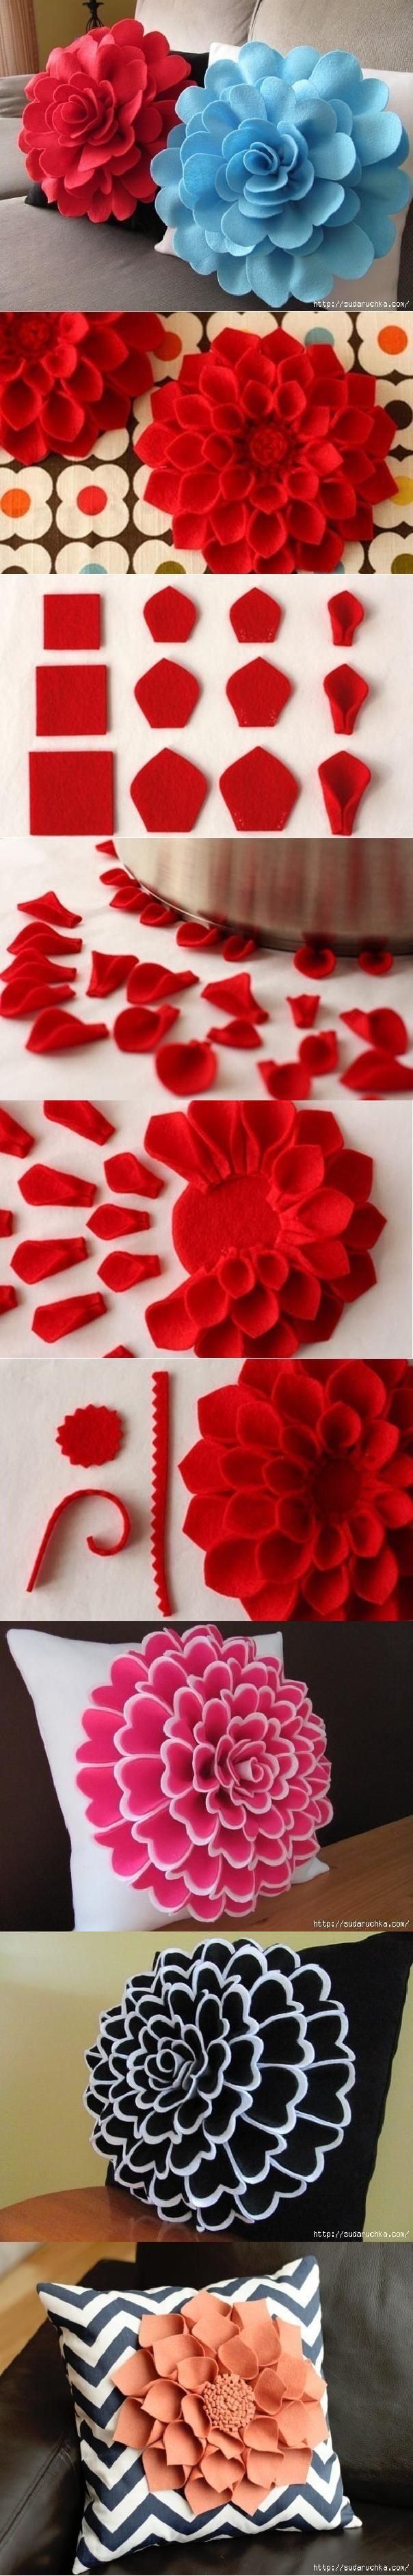 DIY Decorative Felt Flower Pillow [ Wainscotingamerica.com ] #DIY #wainscoting #design